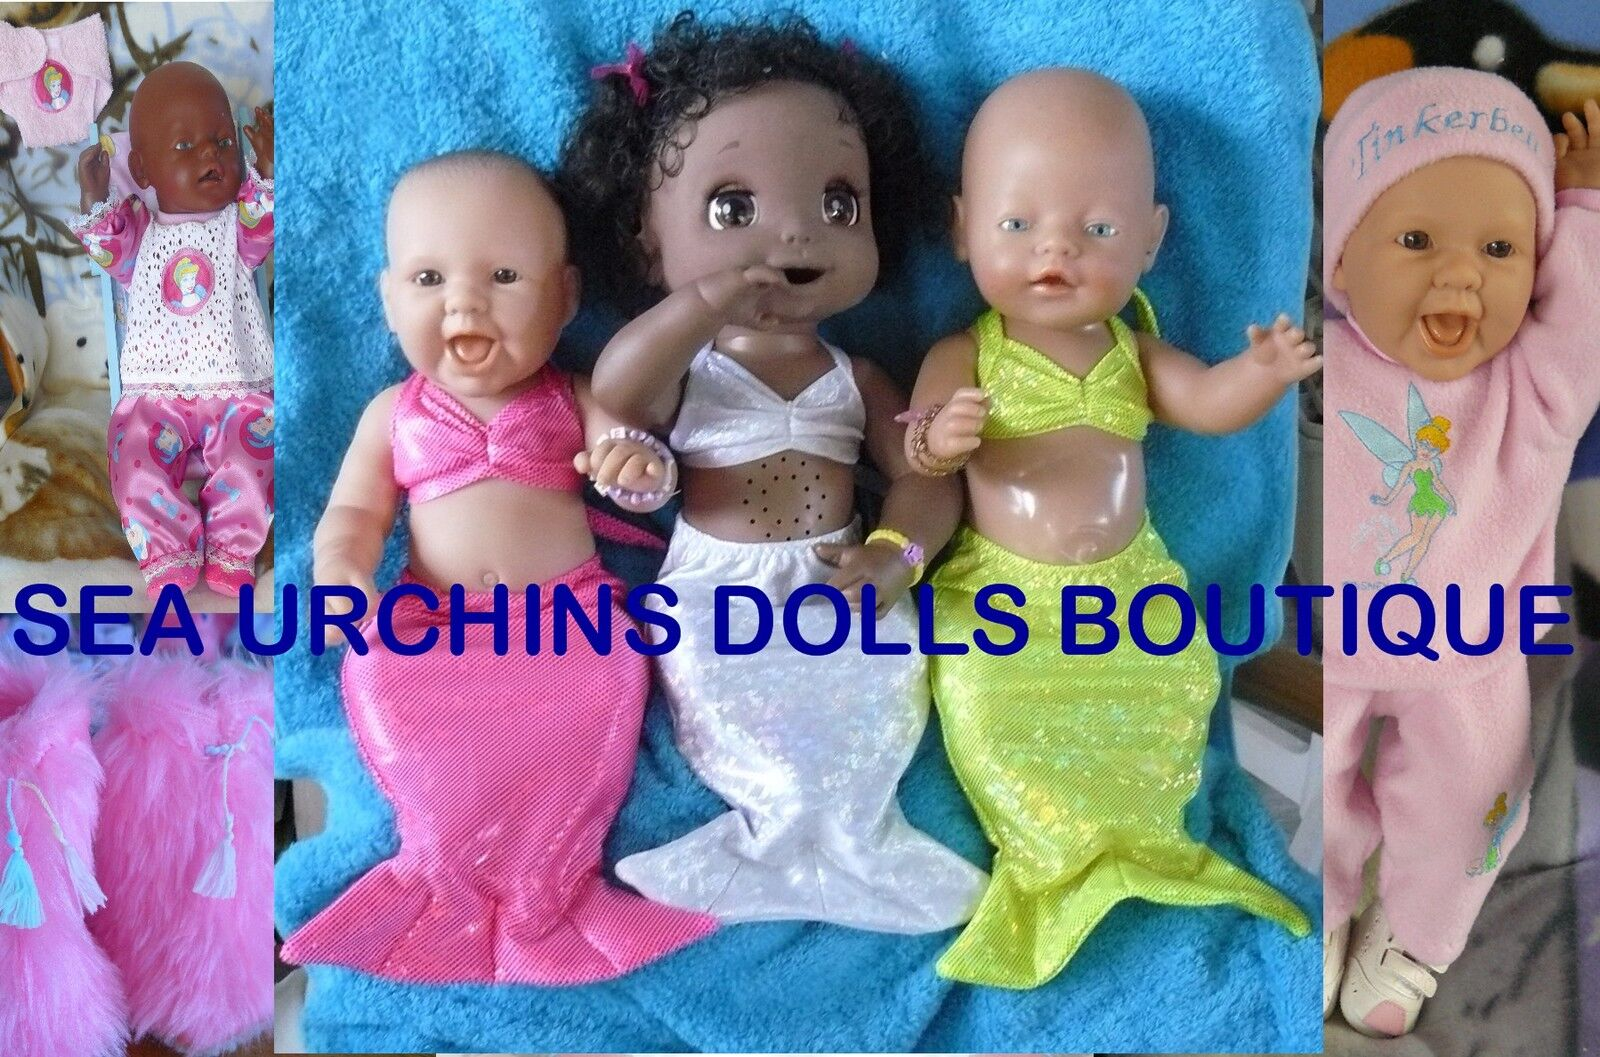 SeaUrchins Doll and Baby Boutique